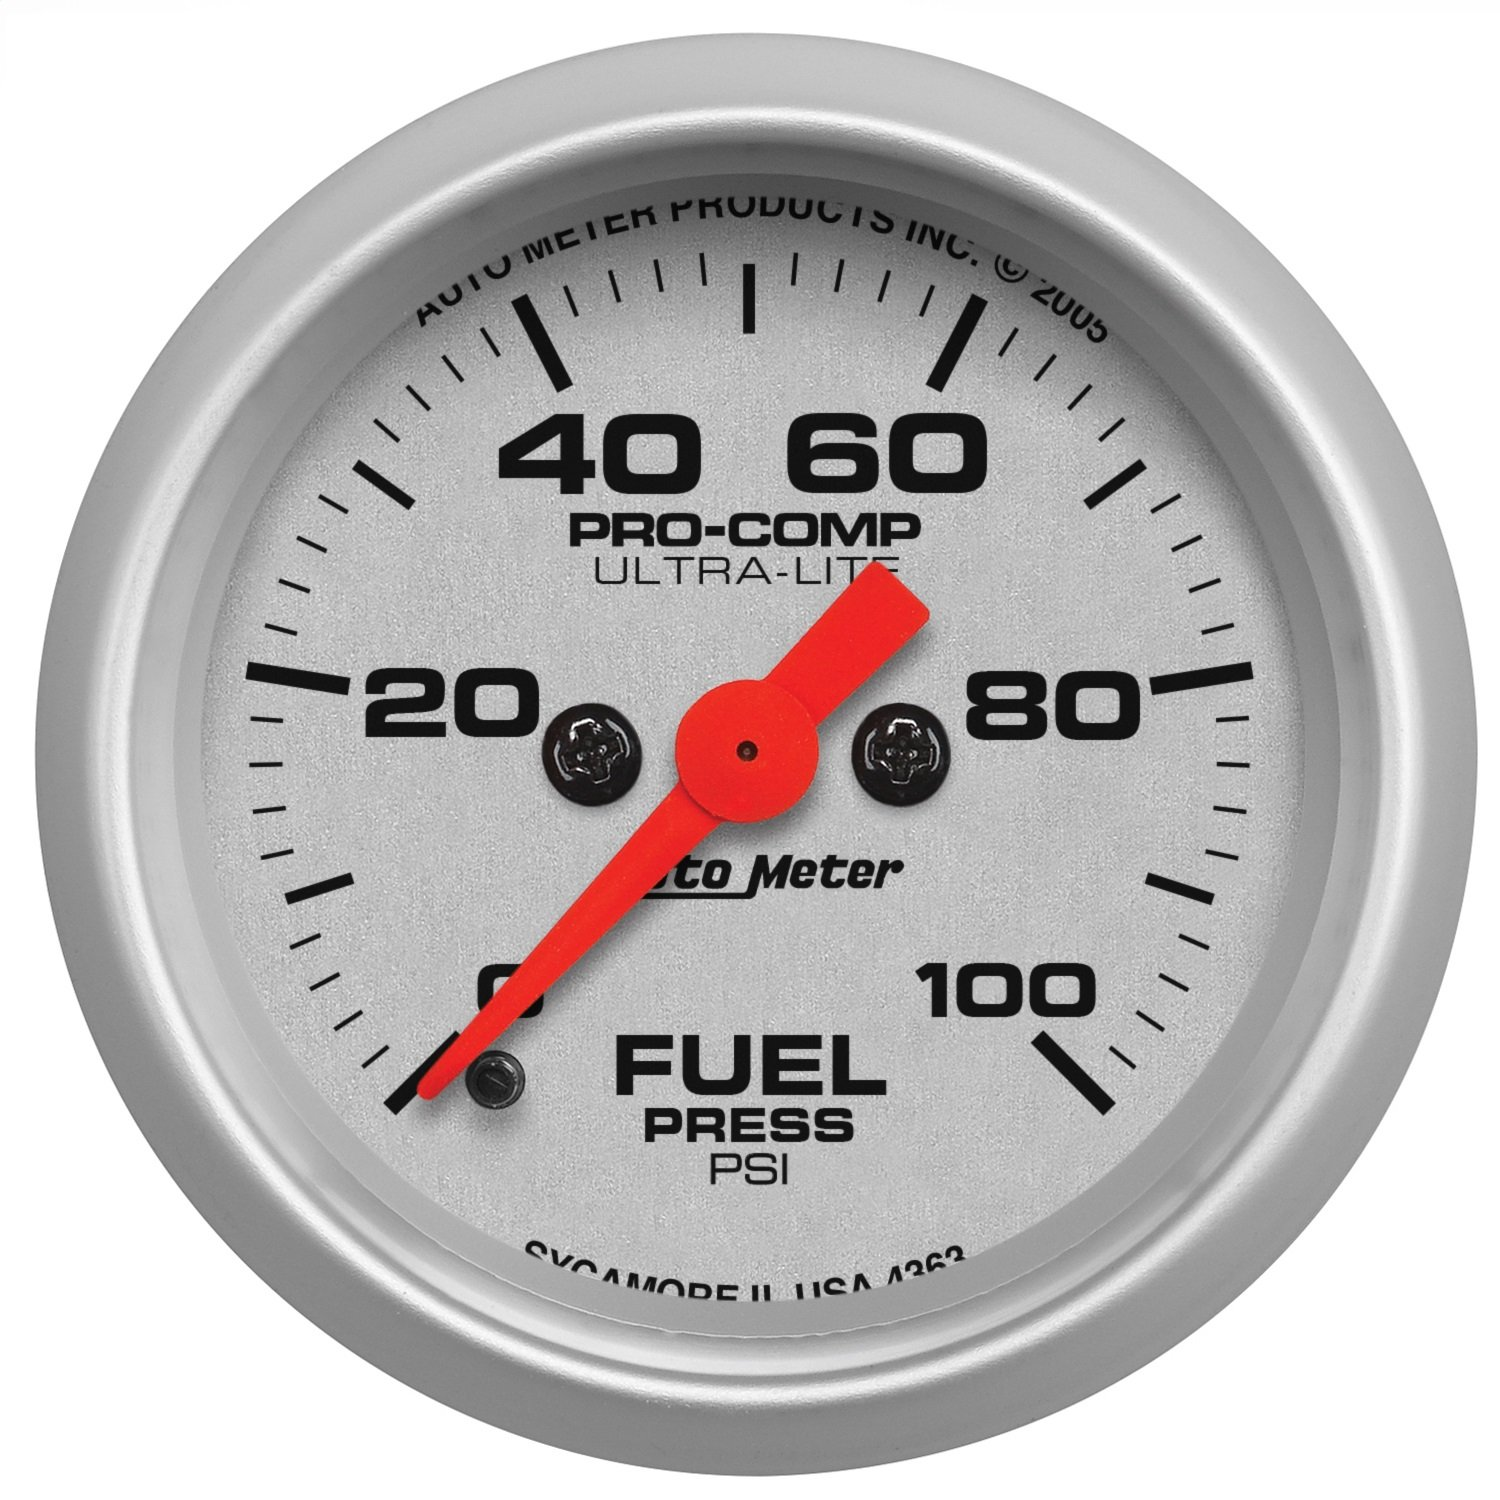 Auto Meter 4363 Ultra-Lite Electric Fuel Pressure Gauge by Auto Meter (Image #1)